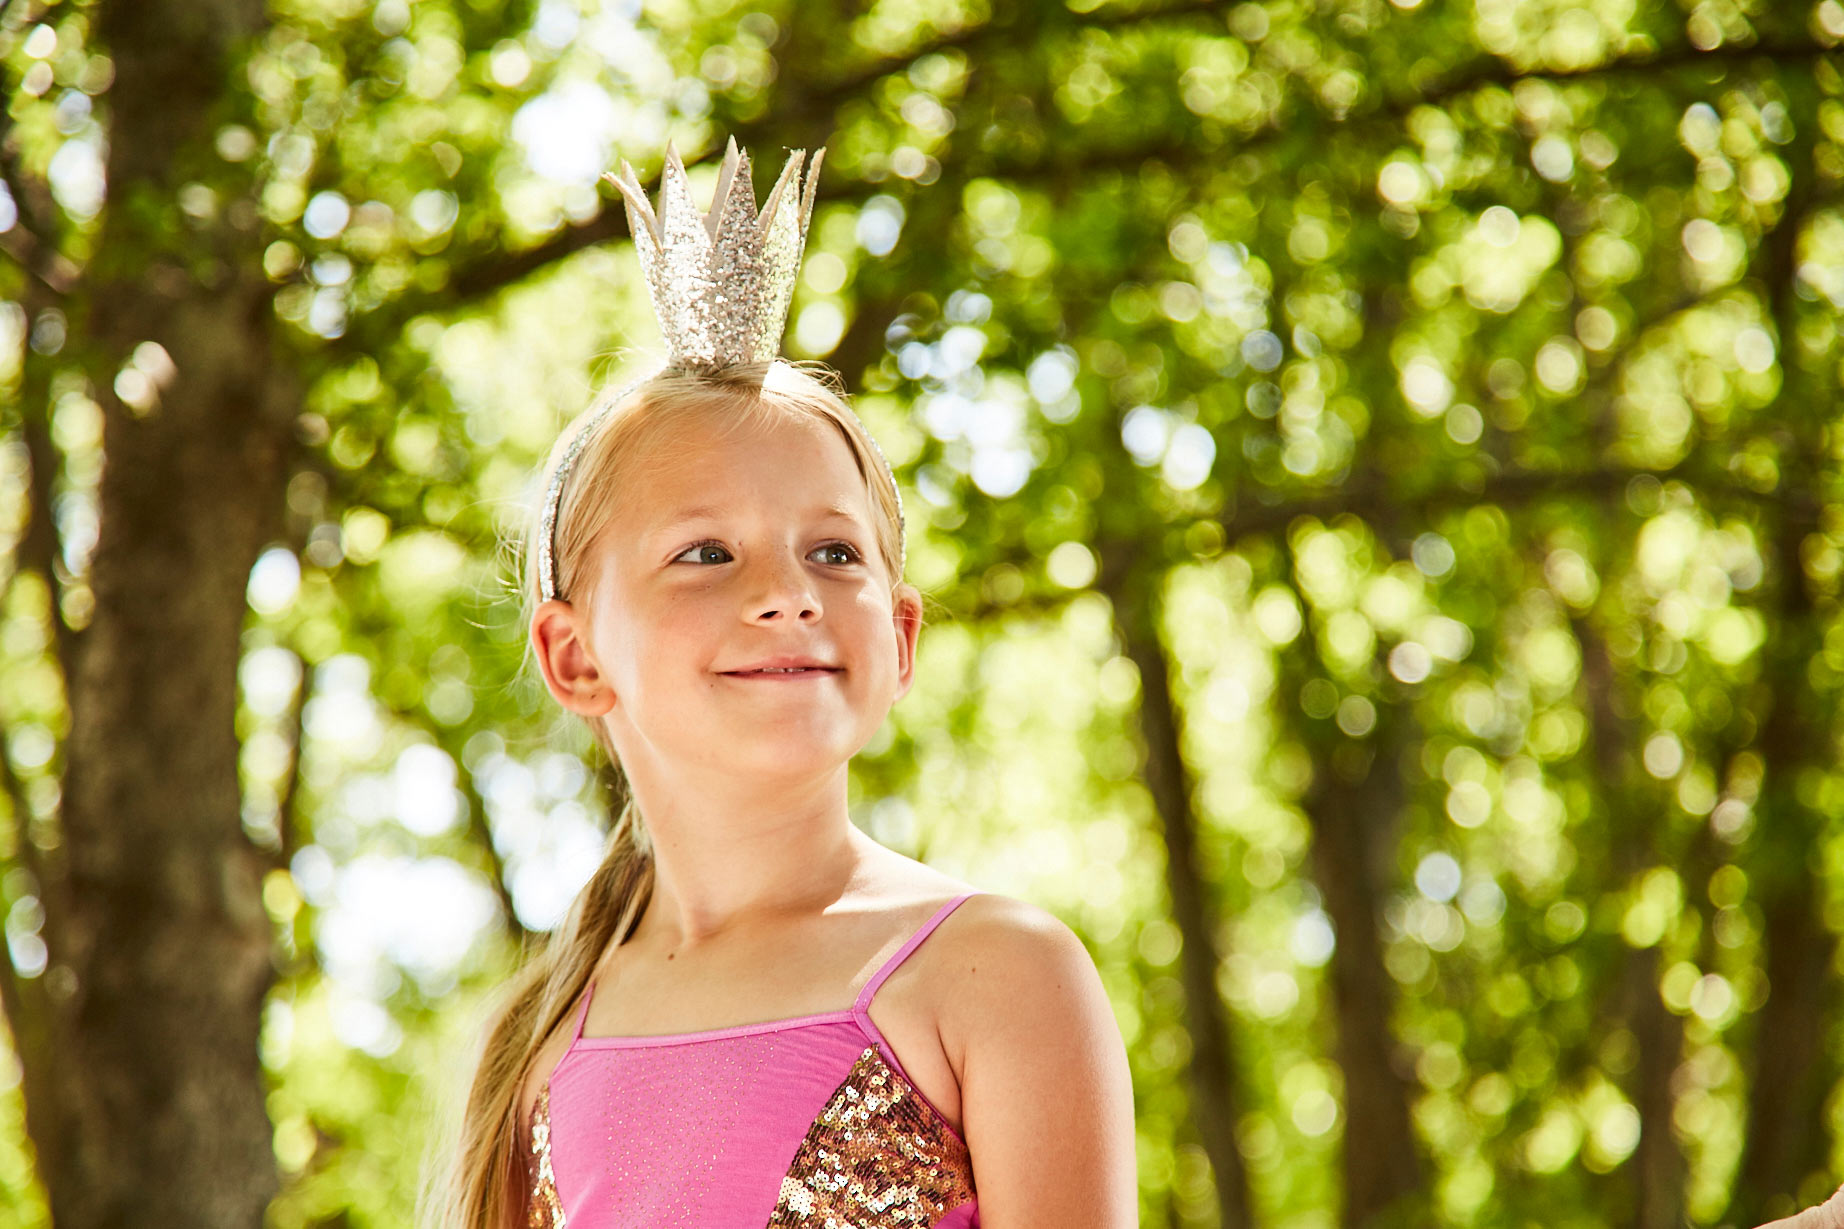 KIDS-Summer_PRINCESS-Kids_006